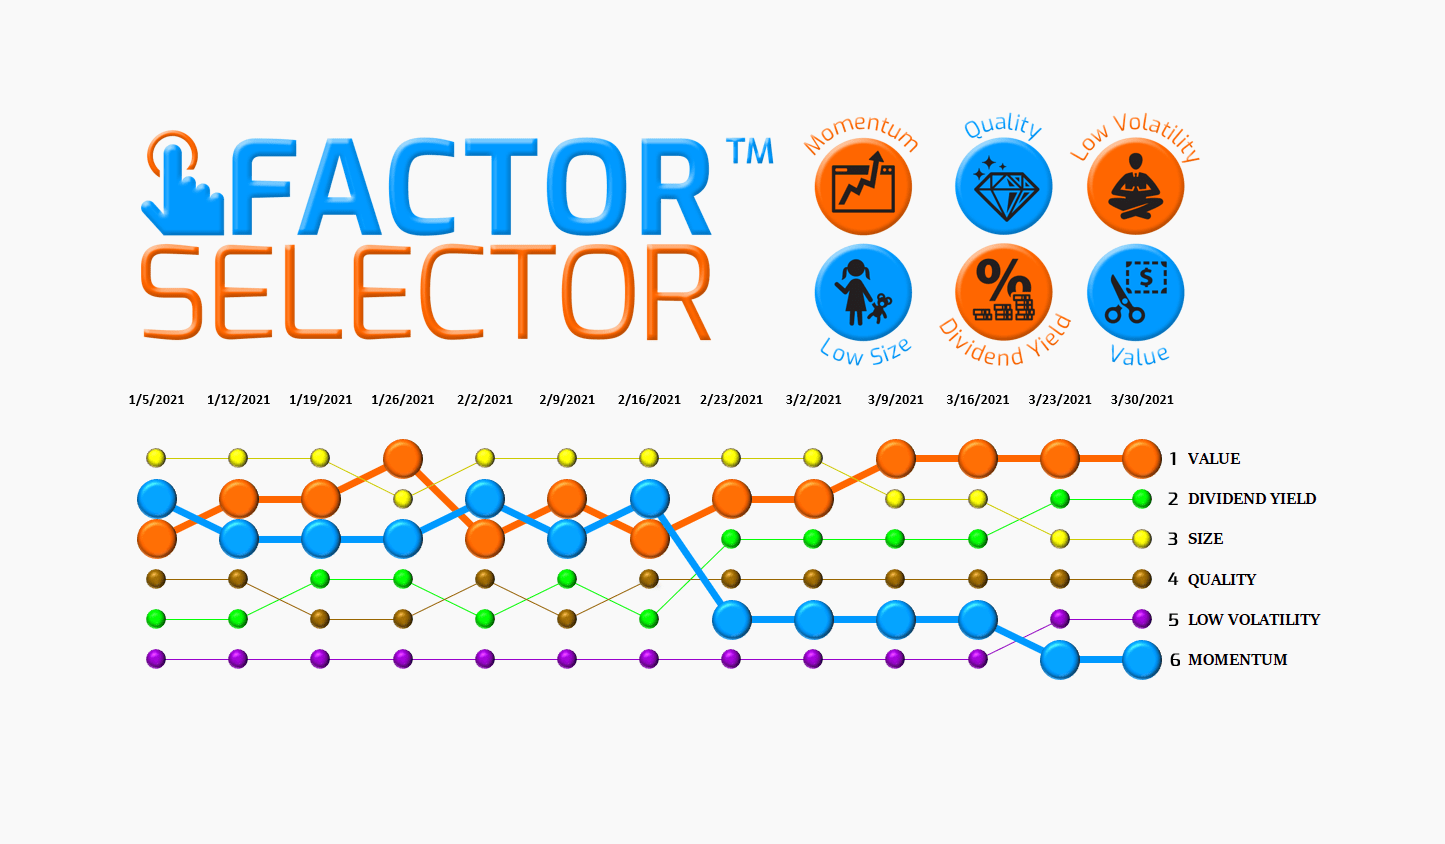 Factor Selector™  – 03/31/21 via @https://www.pinterest.com/market_scholars